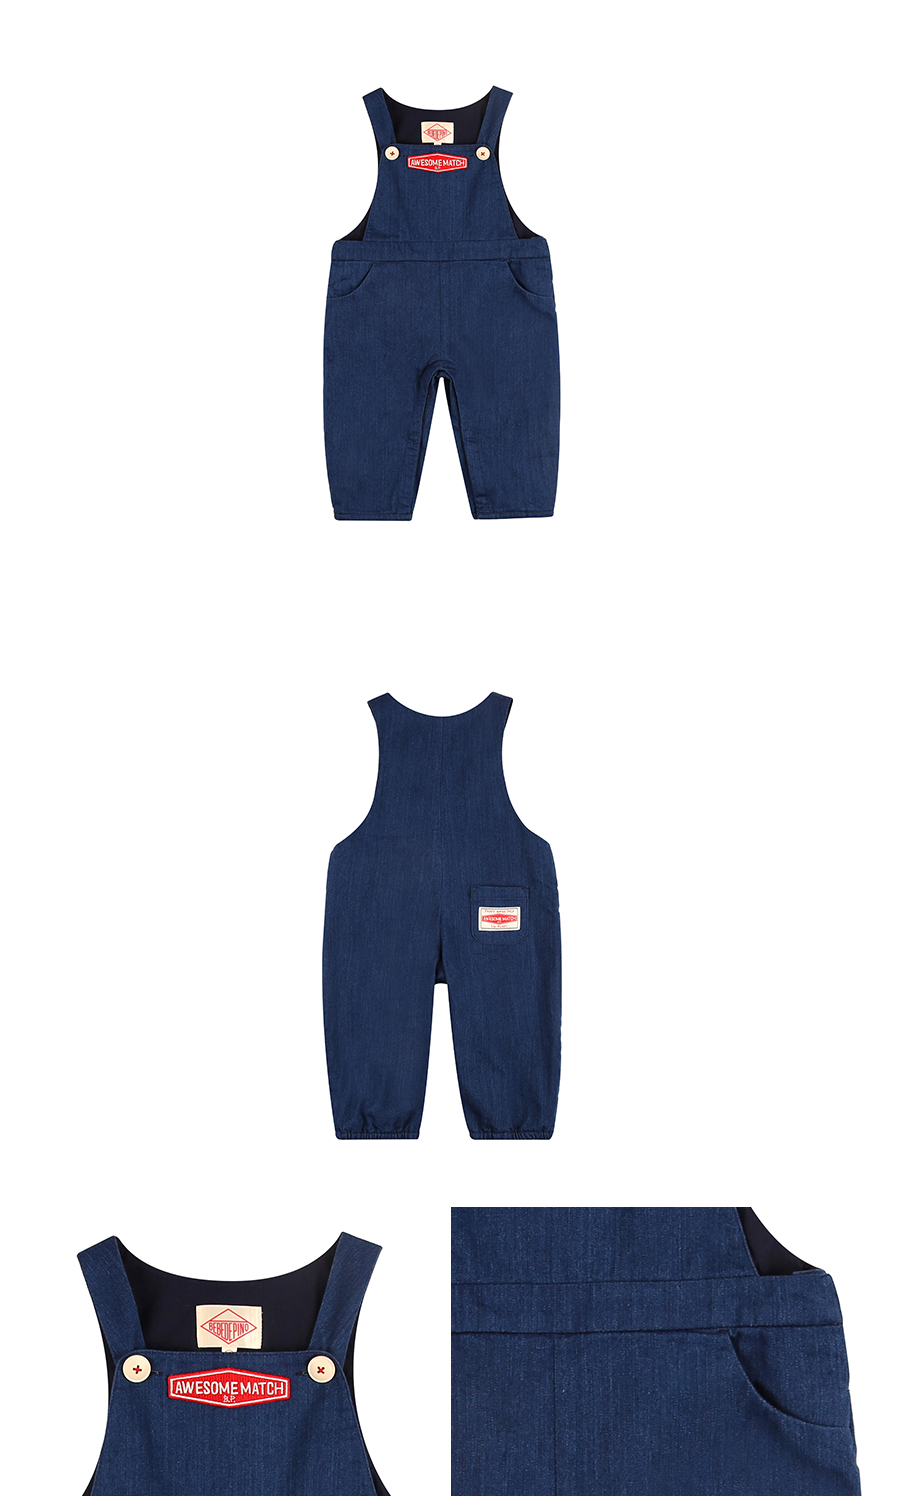 Awesome match baby denim playsuit 상세 이미지